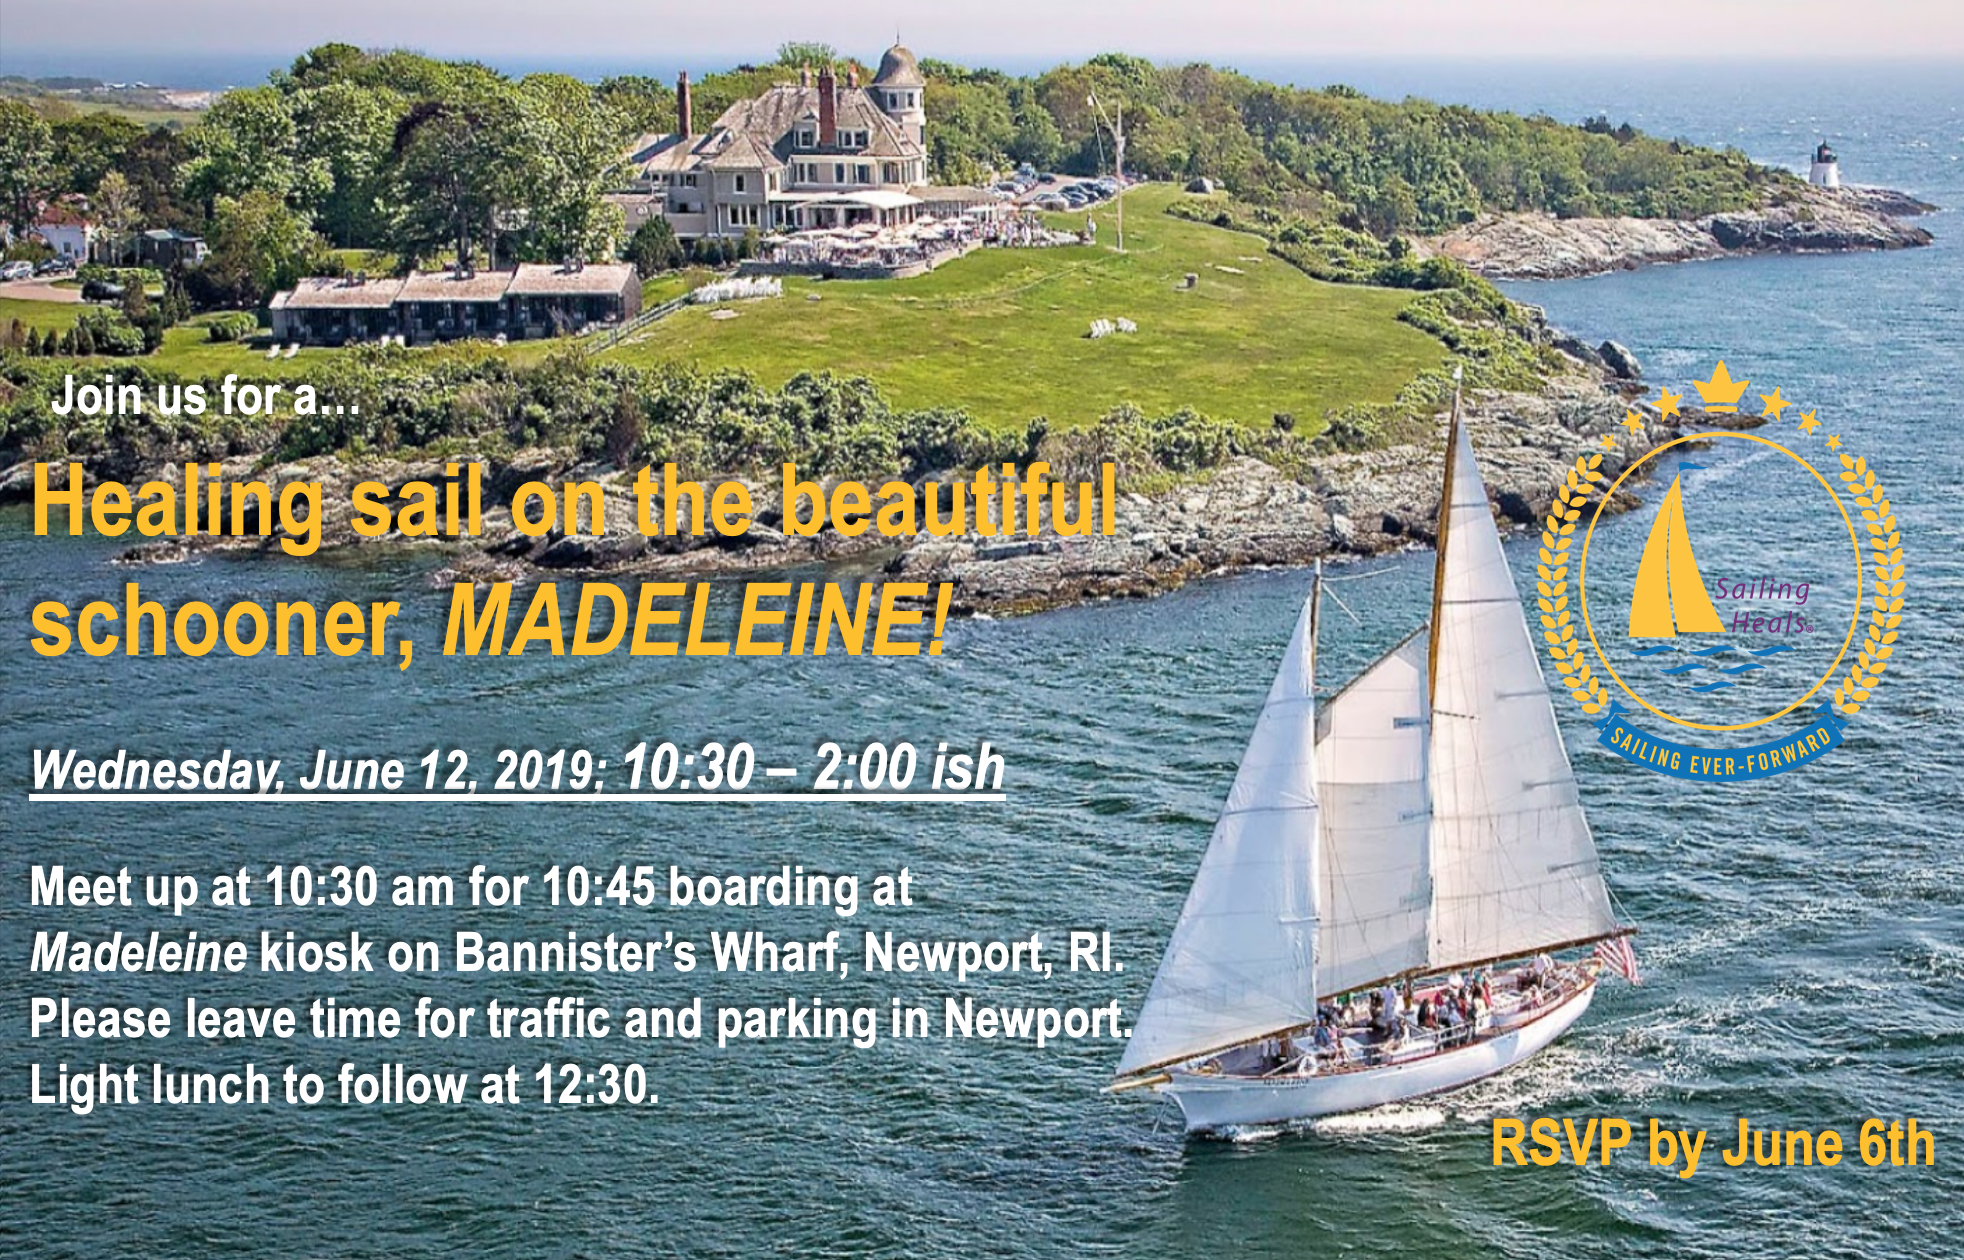 6.12.19 Madeleine lunch and healing sail